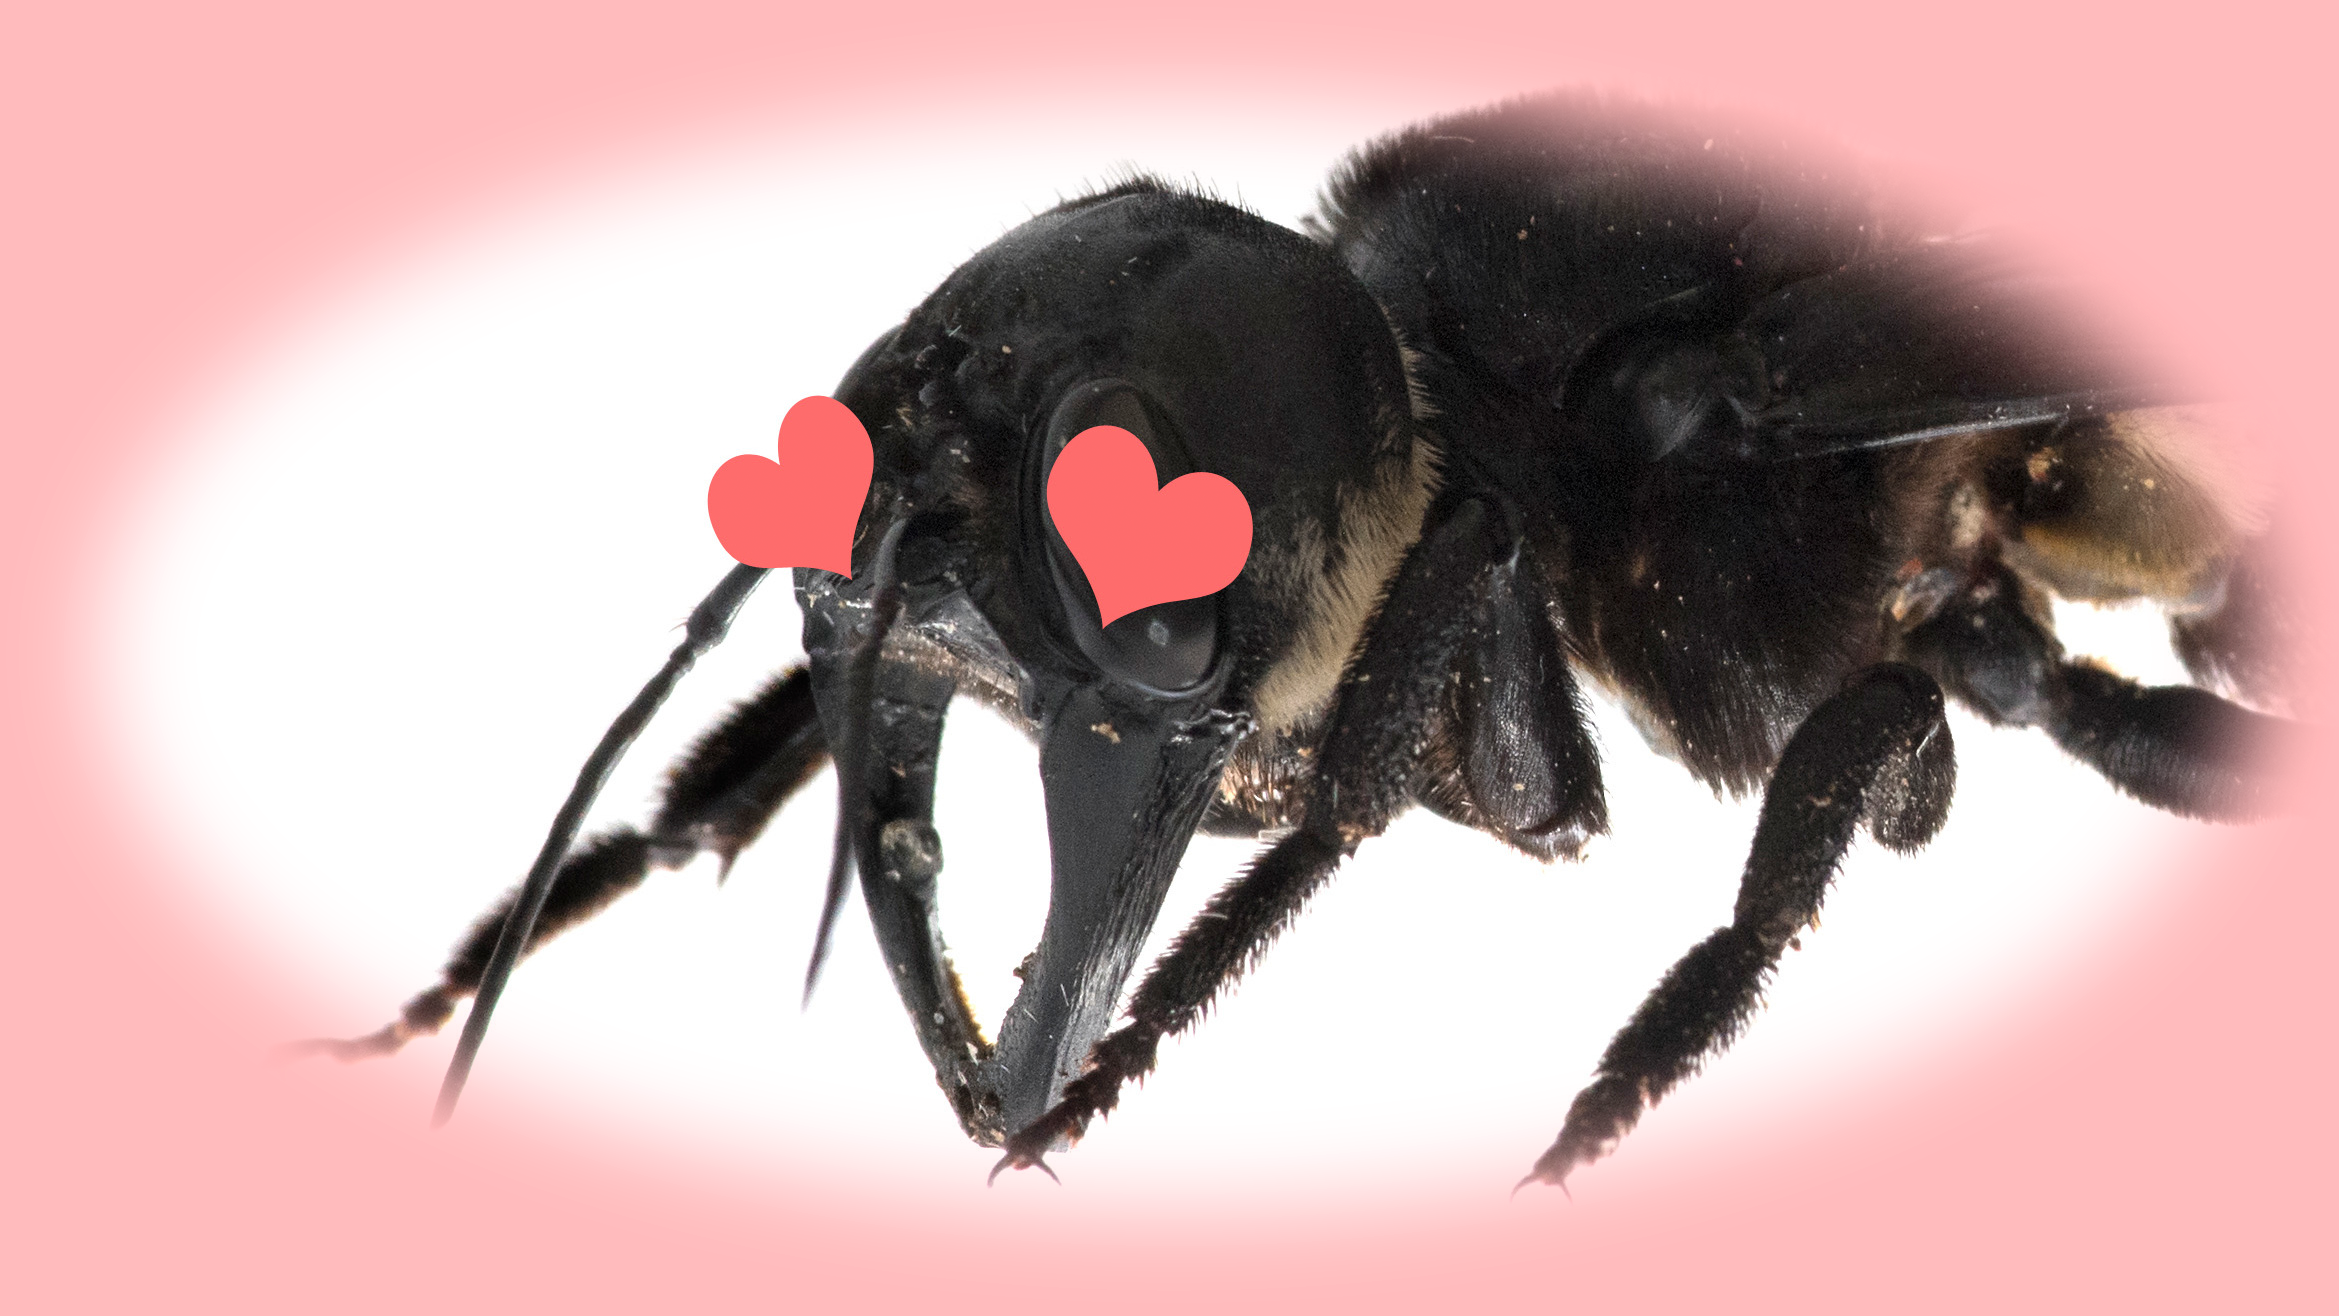 The World's Biggest Bee Just Buzzed Into My Heart